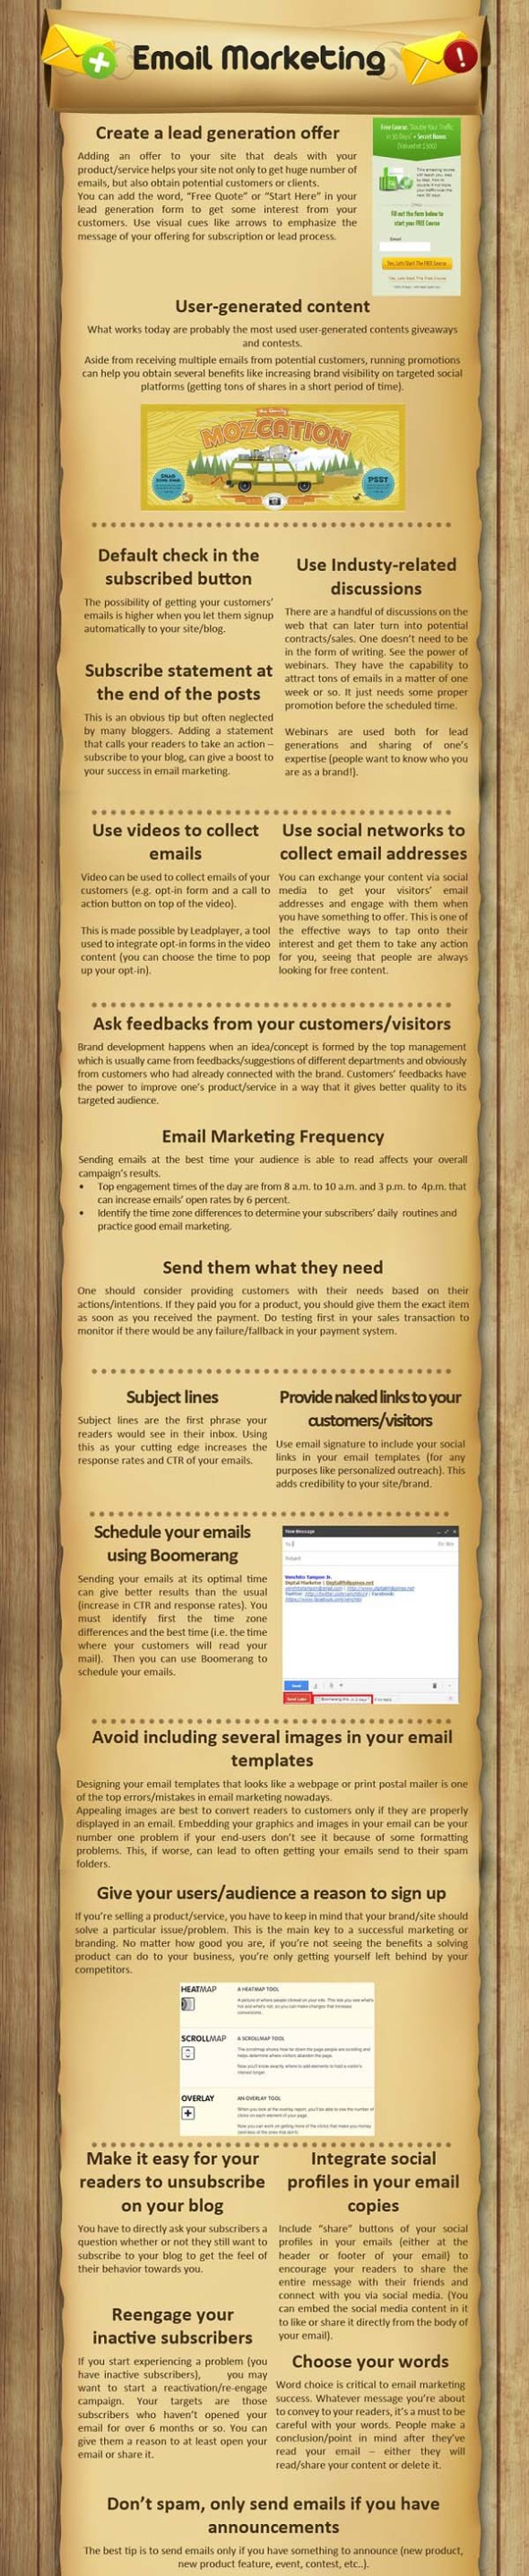 Blog Marketing - Email Marketing